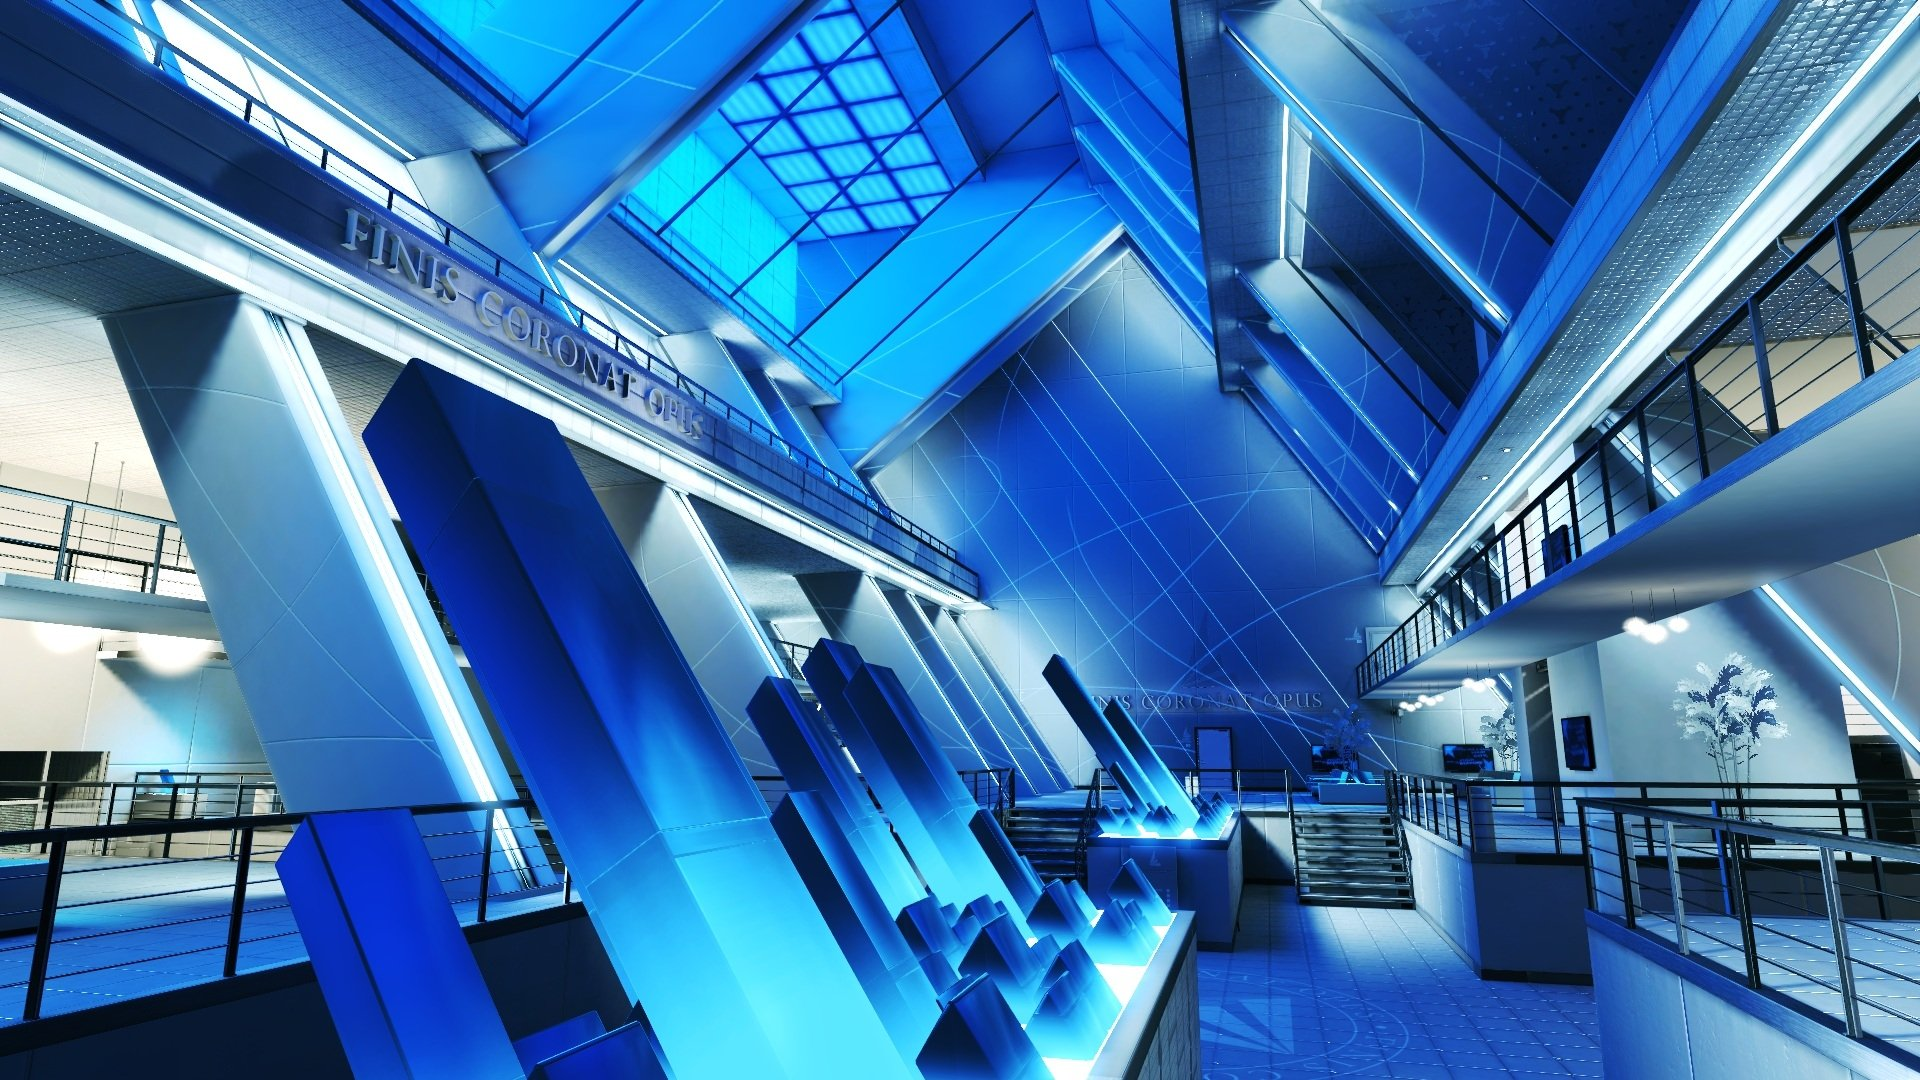 Artistic - Room  CGI Building Blue Wallpaper